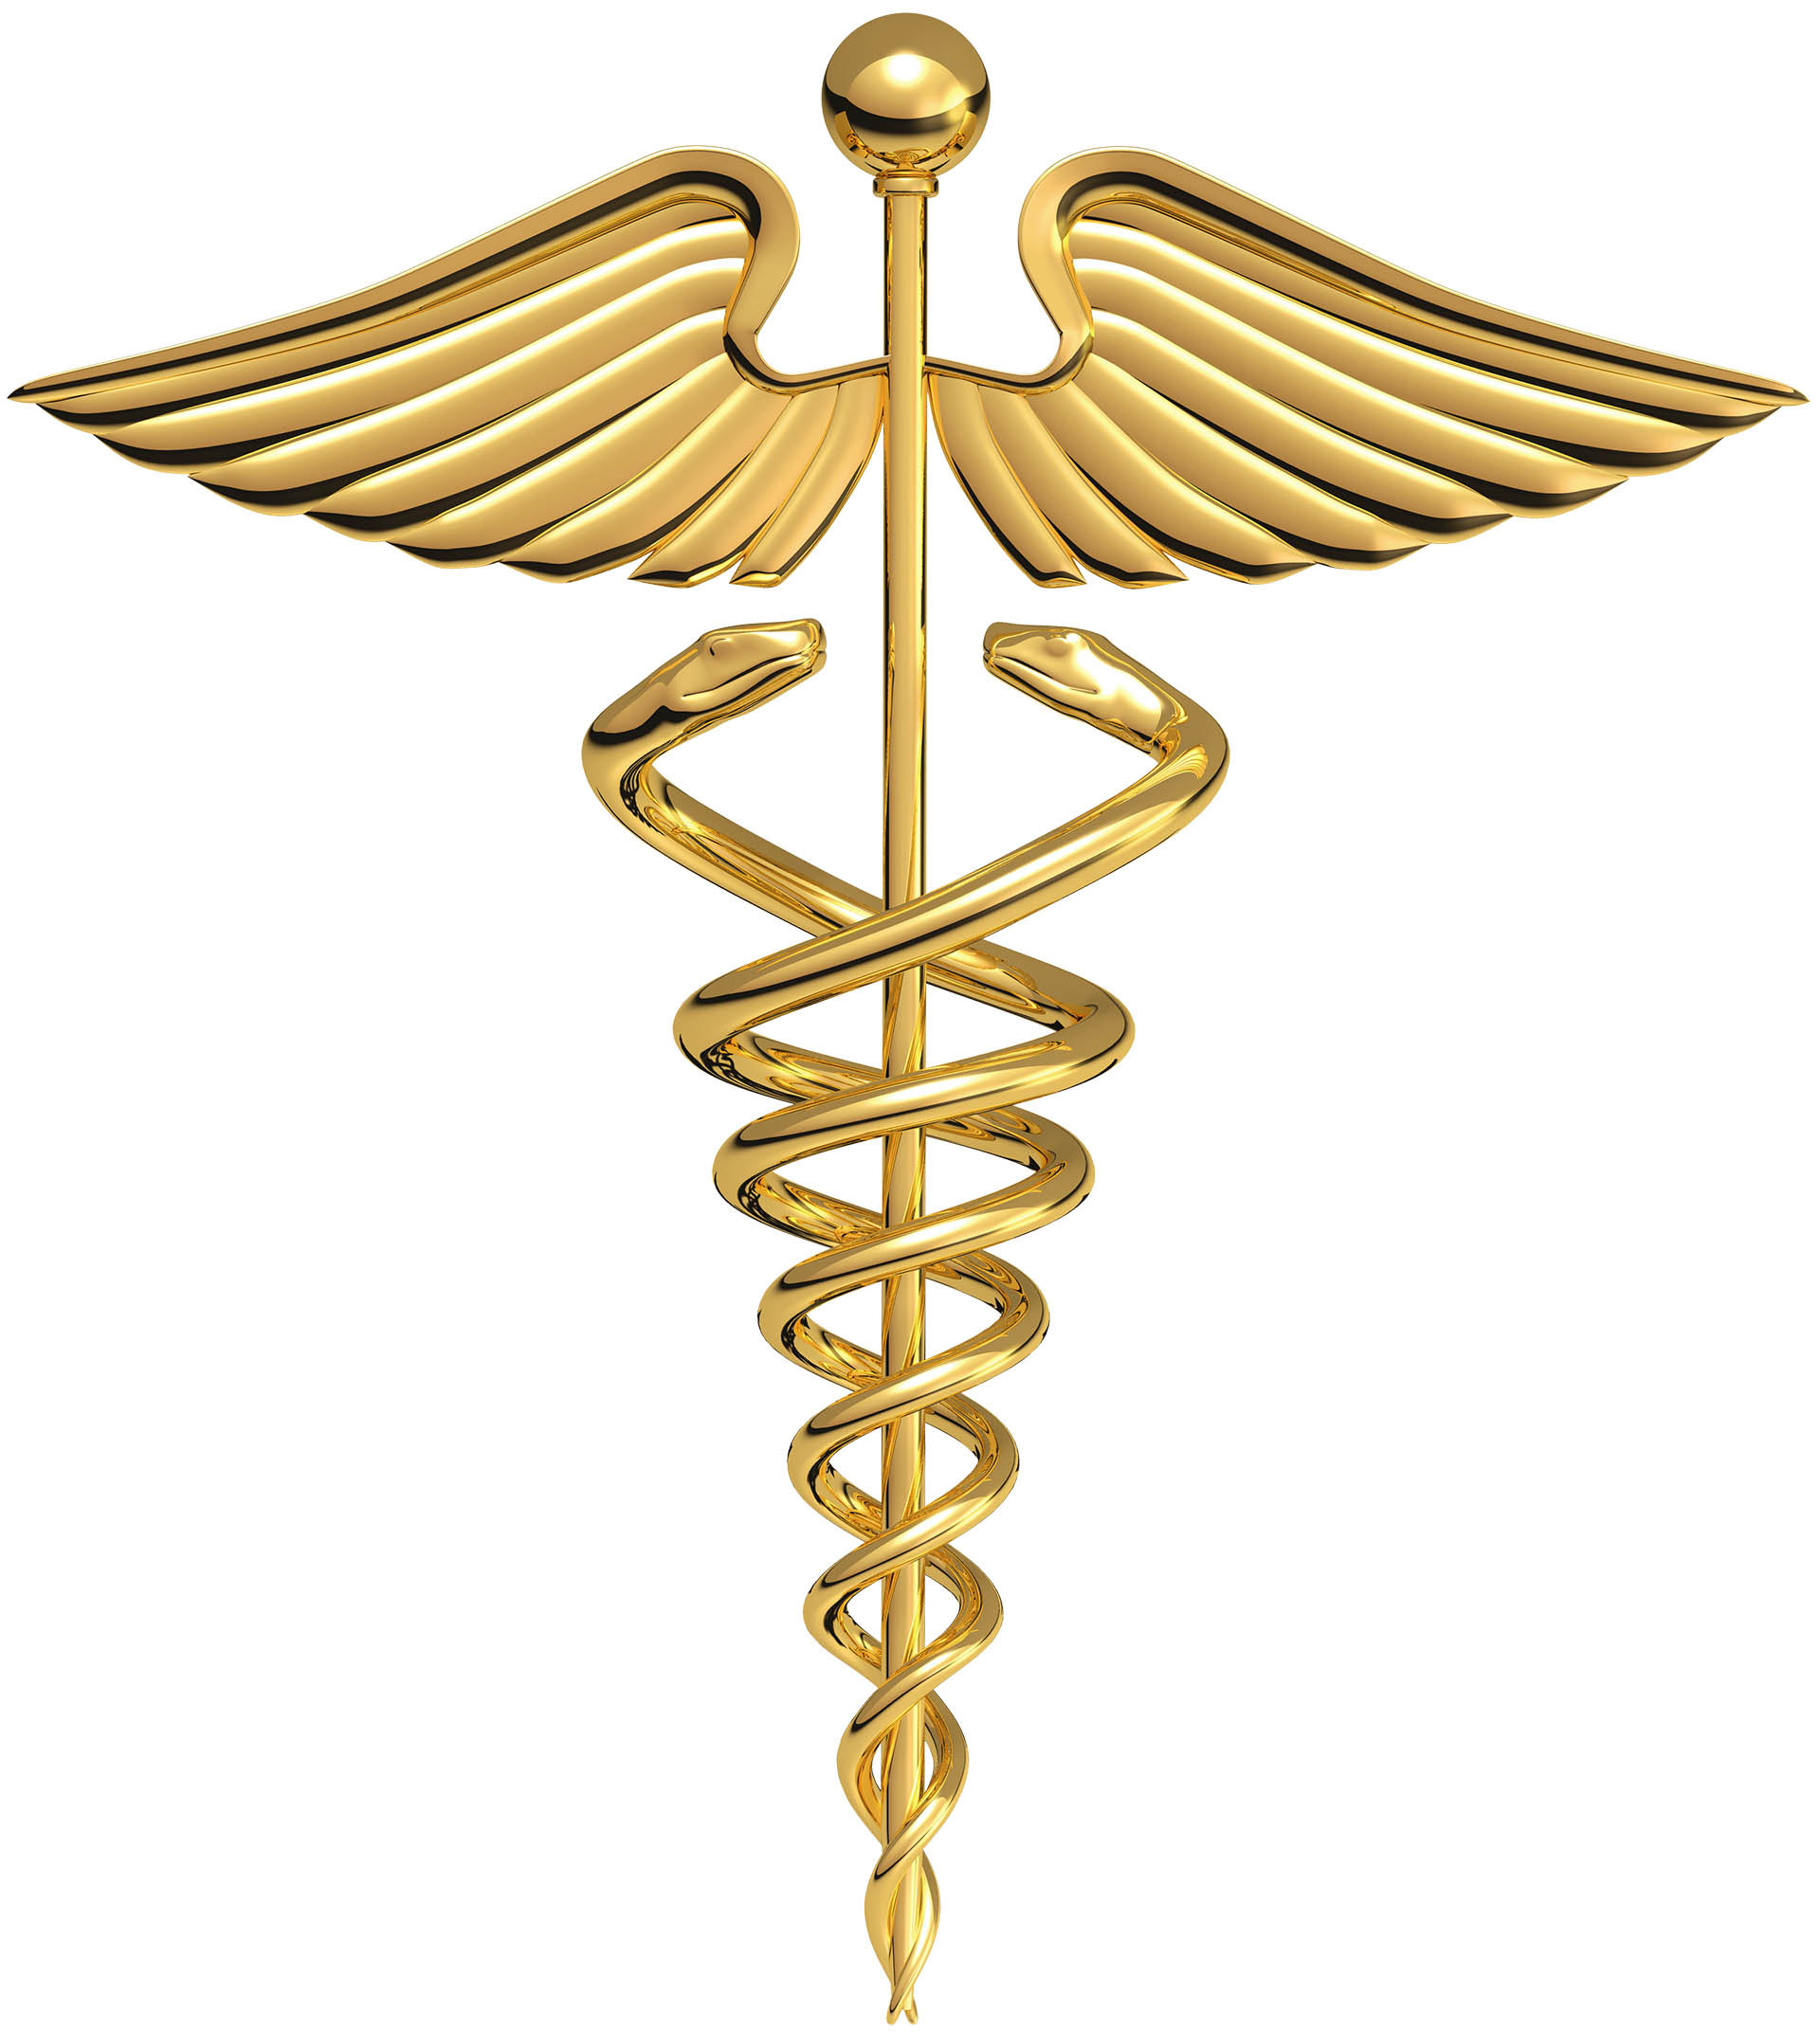 Caduceus - HEALTH - Messenger of the gods - DO NO HARM - FEAR NOT - BE NOT AFRAID - CAUSE NO PAIN - BE AS PAINLESS AS POSSIBLE - CAUSE NO FEAR - DO NOT BE SCARY